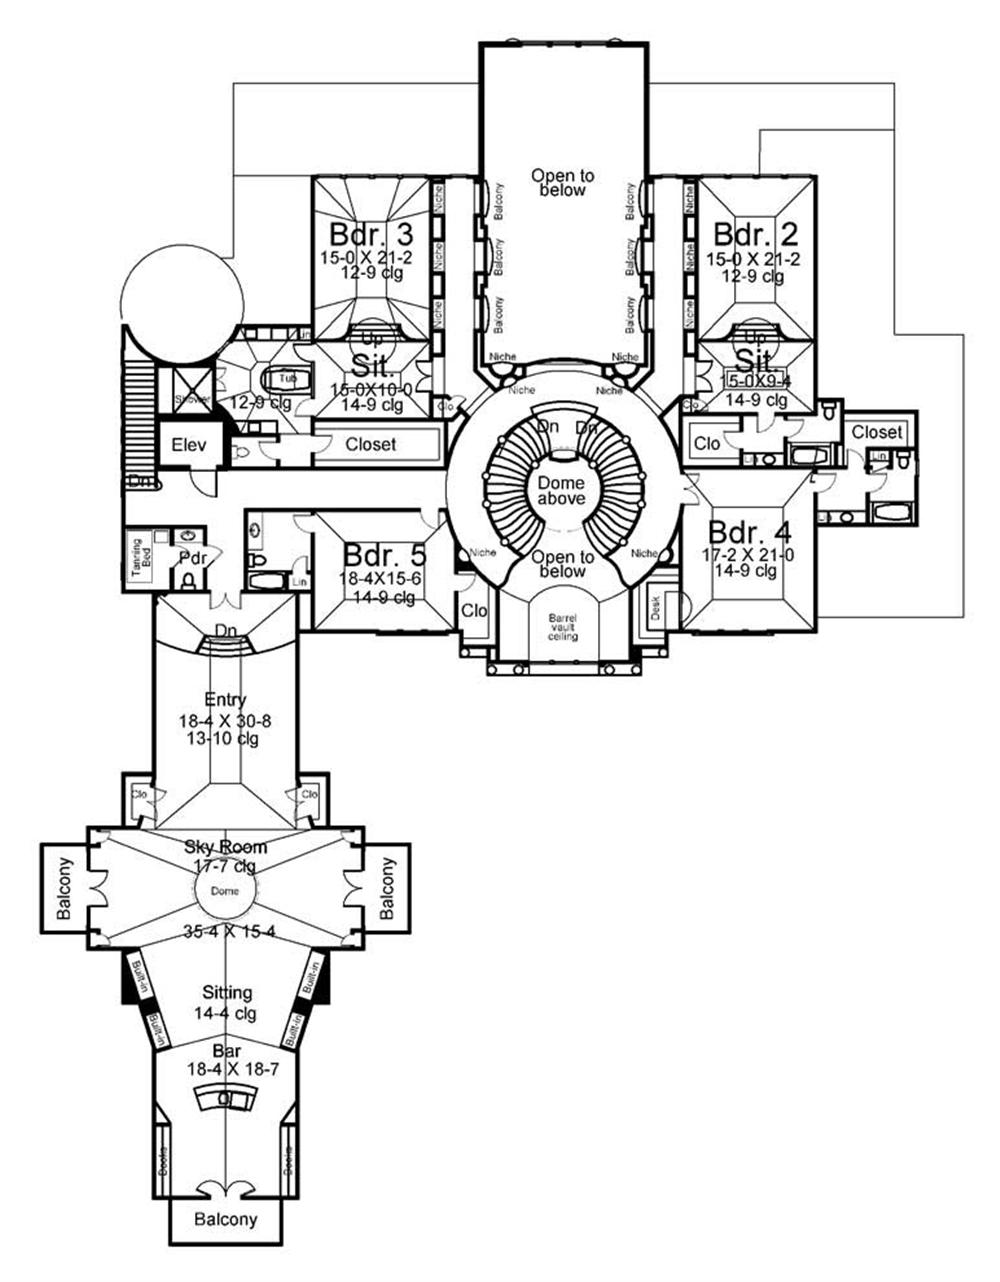 Floor Plan Second Story for luxury home plans AR-Cheverny